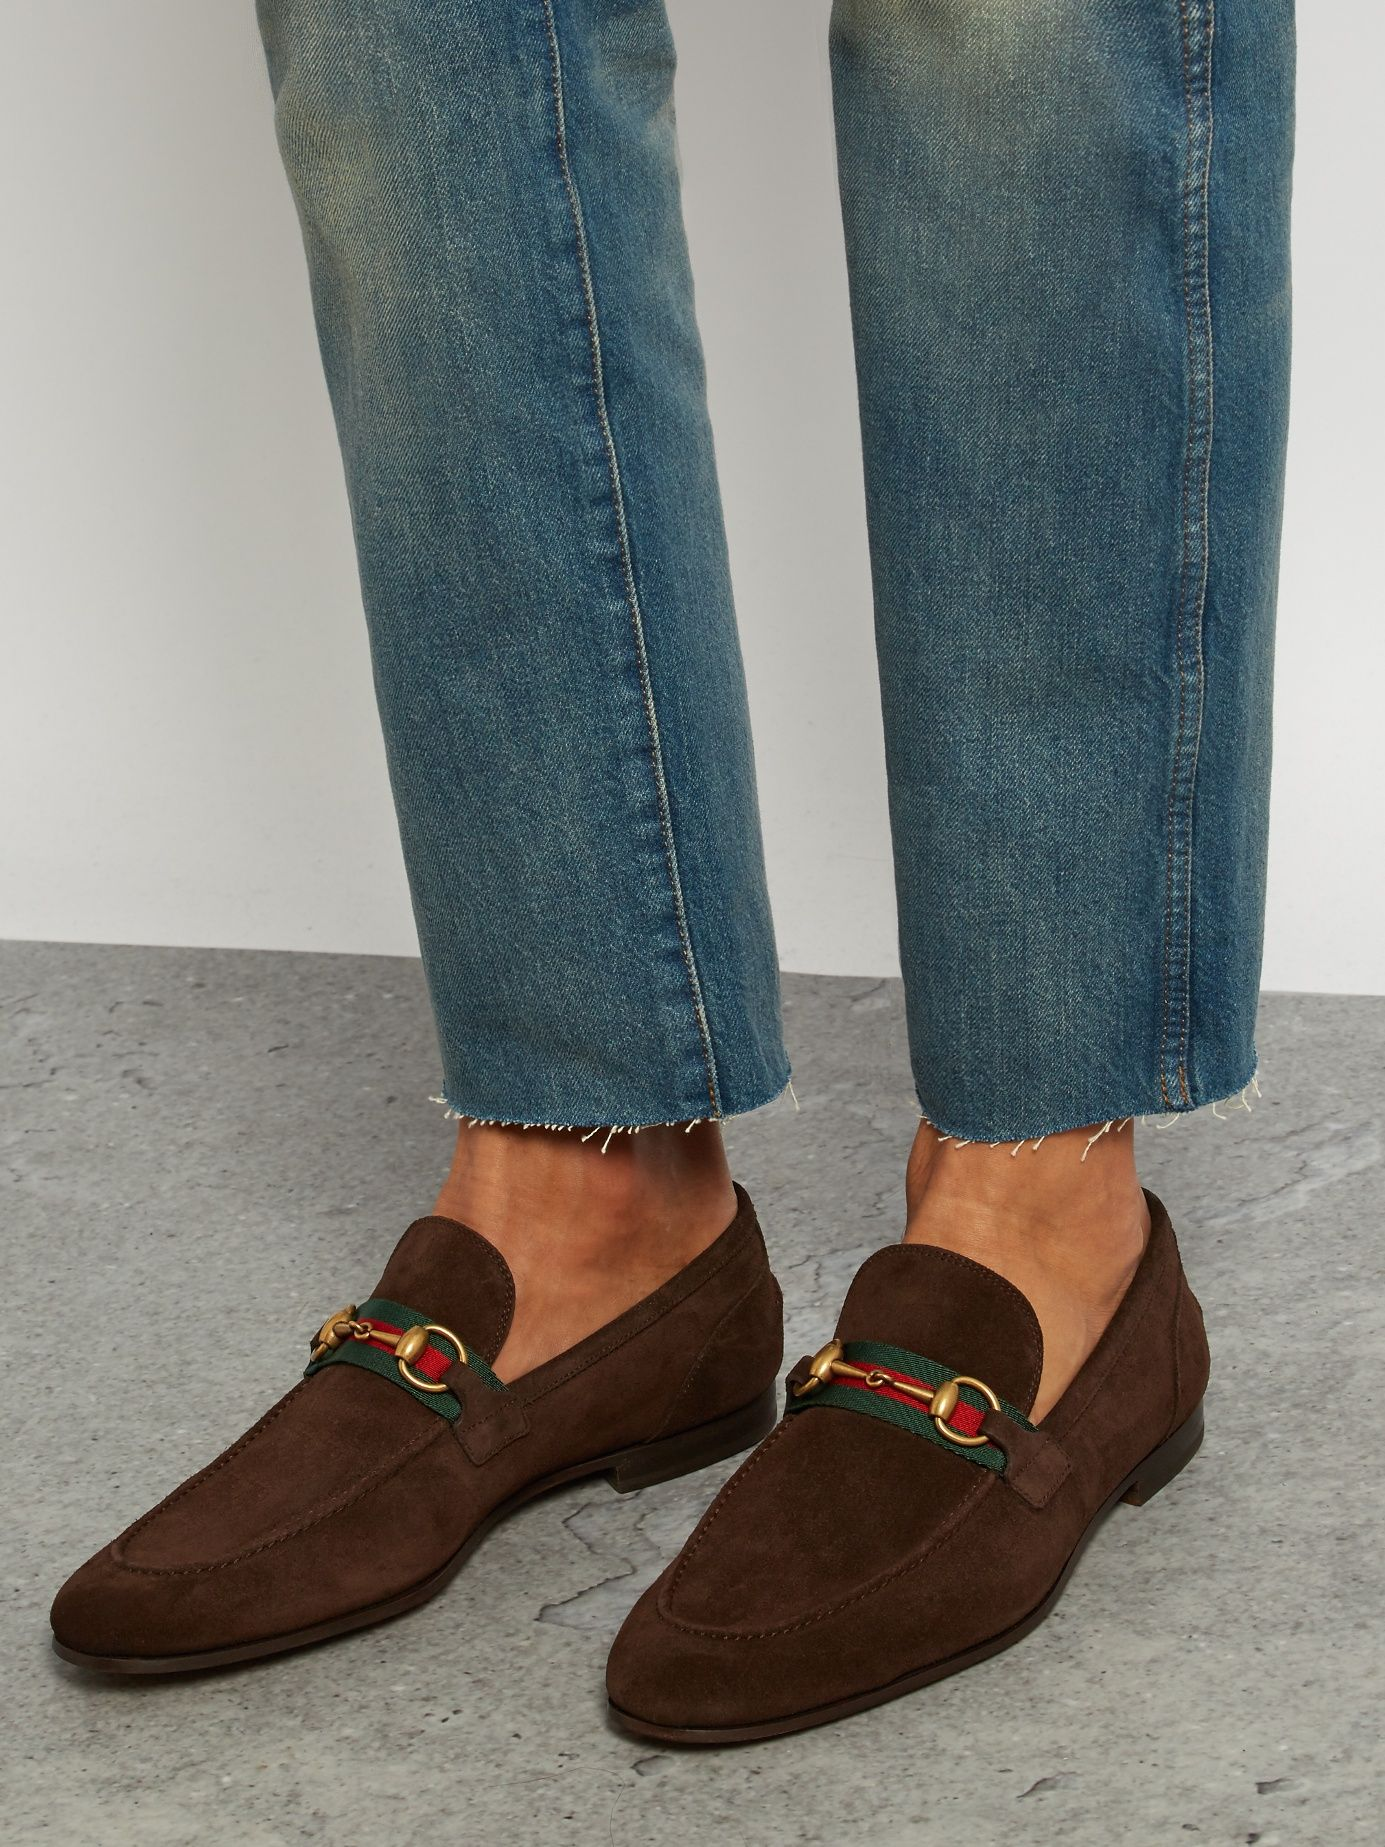 855ddb27f Click here to buy Gucci Elanor suede loafers at MATCHESFASHION.COM ...